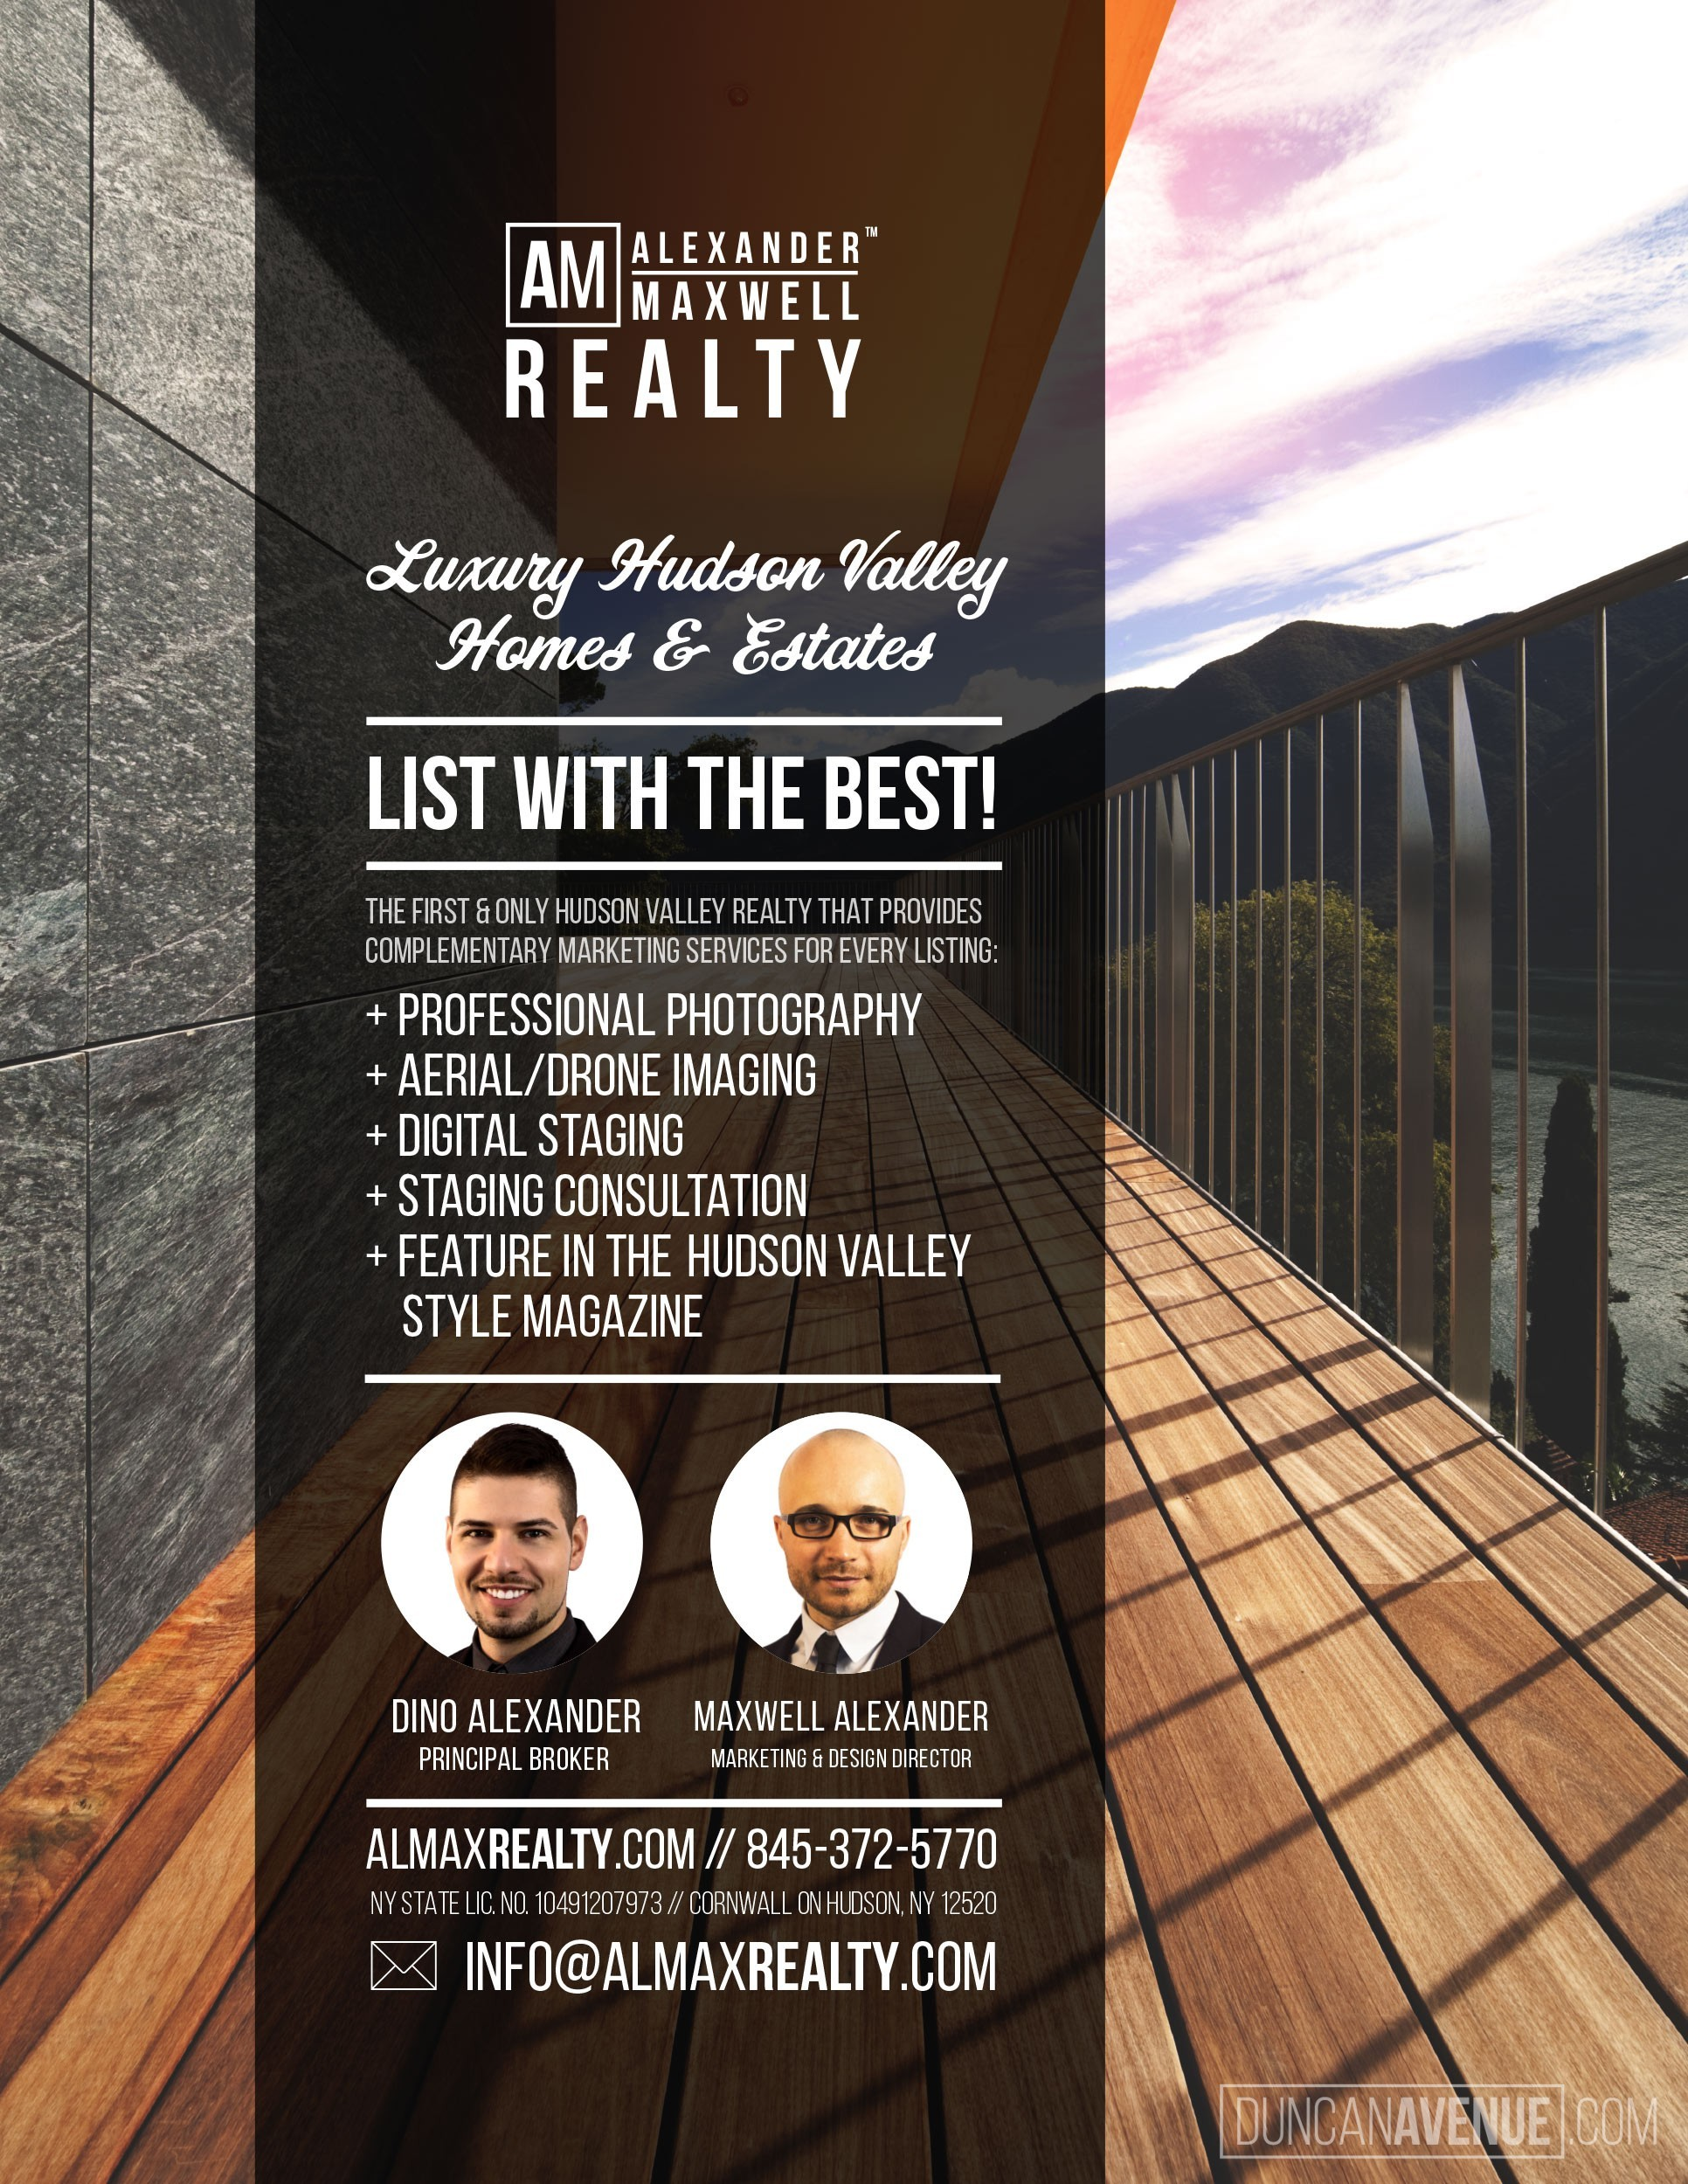 Alexander Maxwell Realty - Luxury Hudson Valley Real Estate - List with the Best